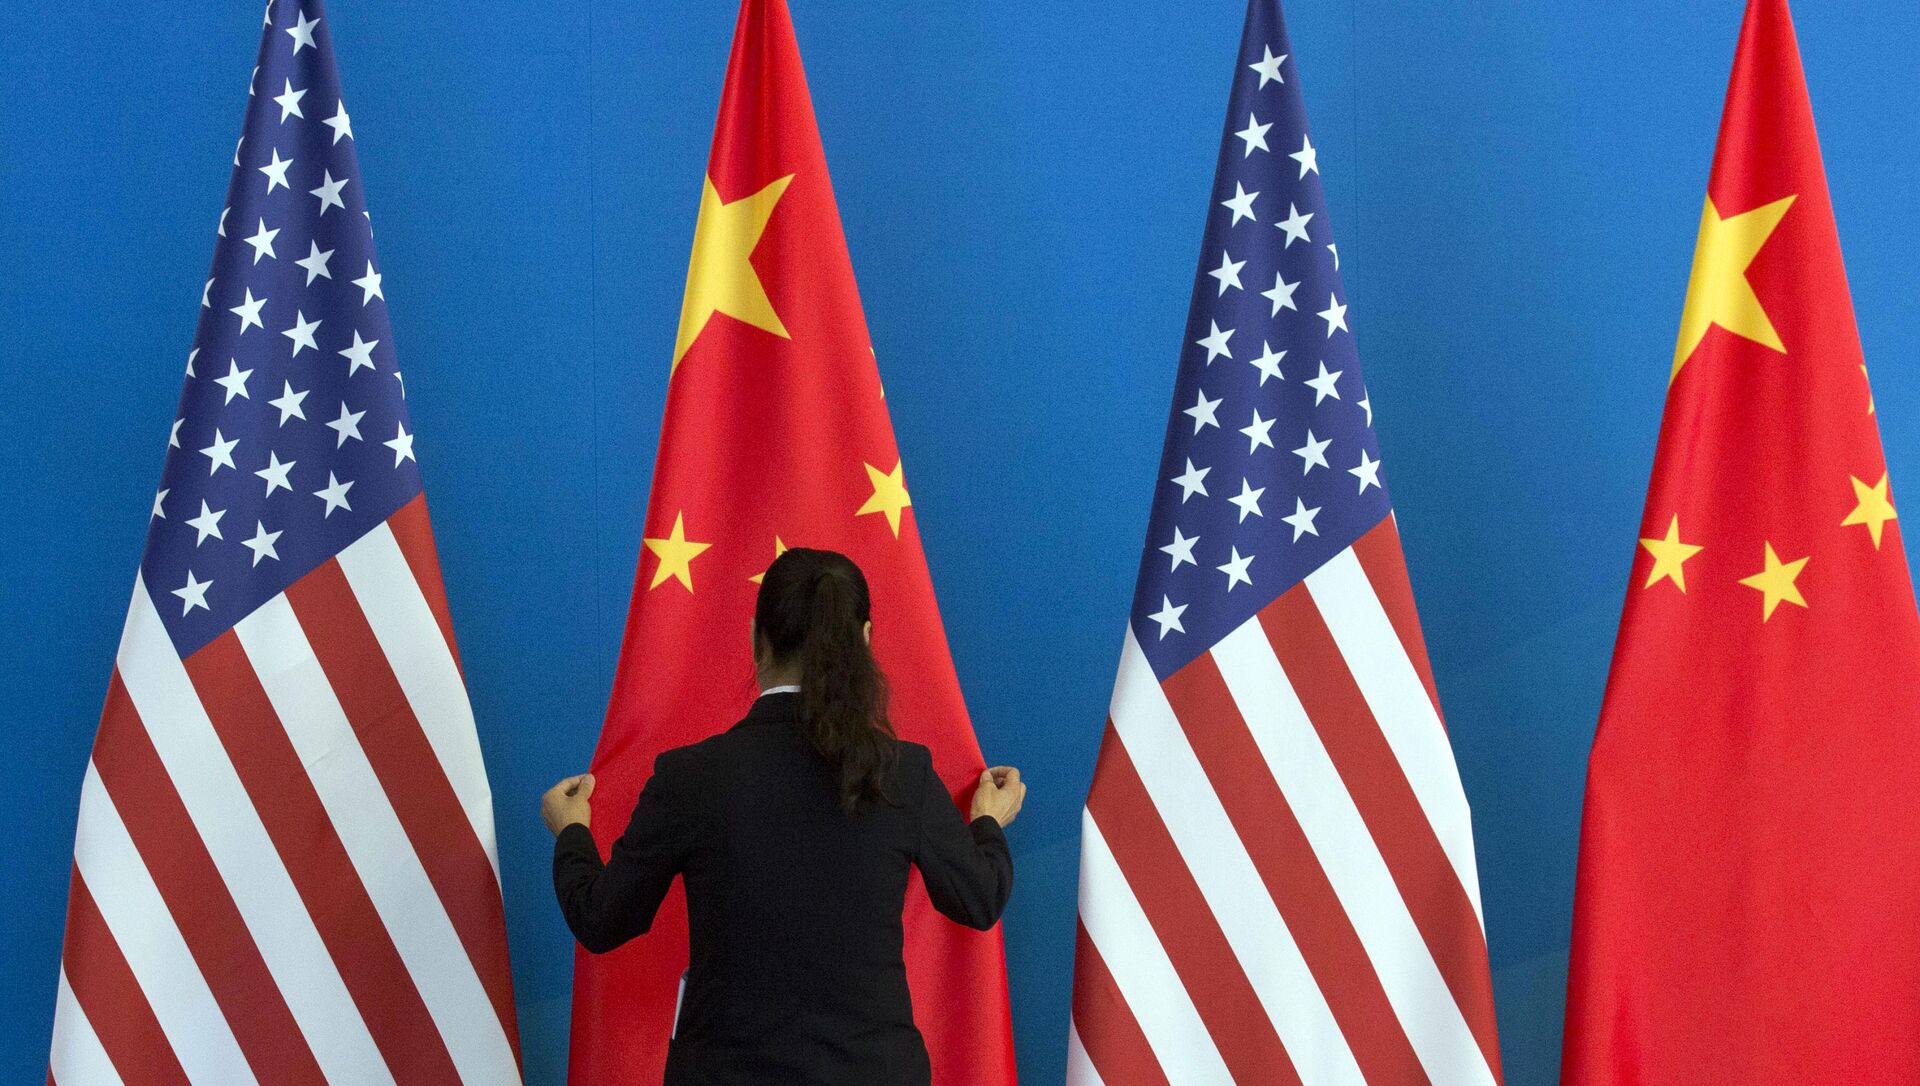 A Chinese woman adjusts the Chinese national flag near U.S. national flags before a Strategic Dialogue expanded meeting that's part of the U.S.-China Strategic and Economic Dialogue at the Diaoyutai State Guesthouse in Beijing, Thursday, July 10, 2014 - Sputnik International, 1920, 11.06.2021